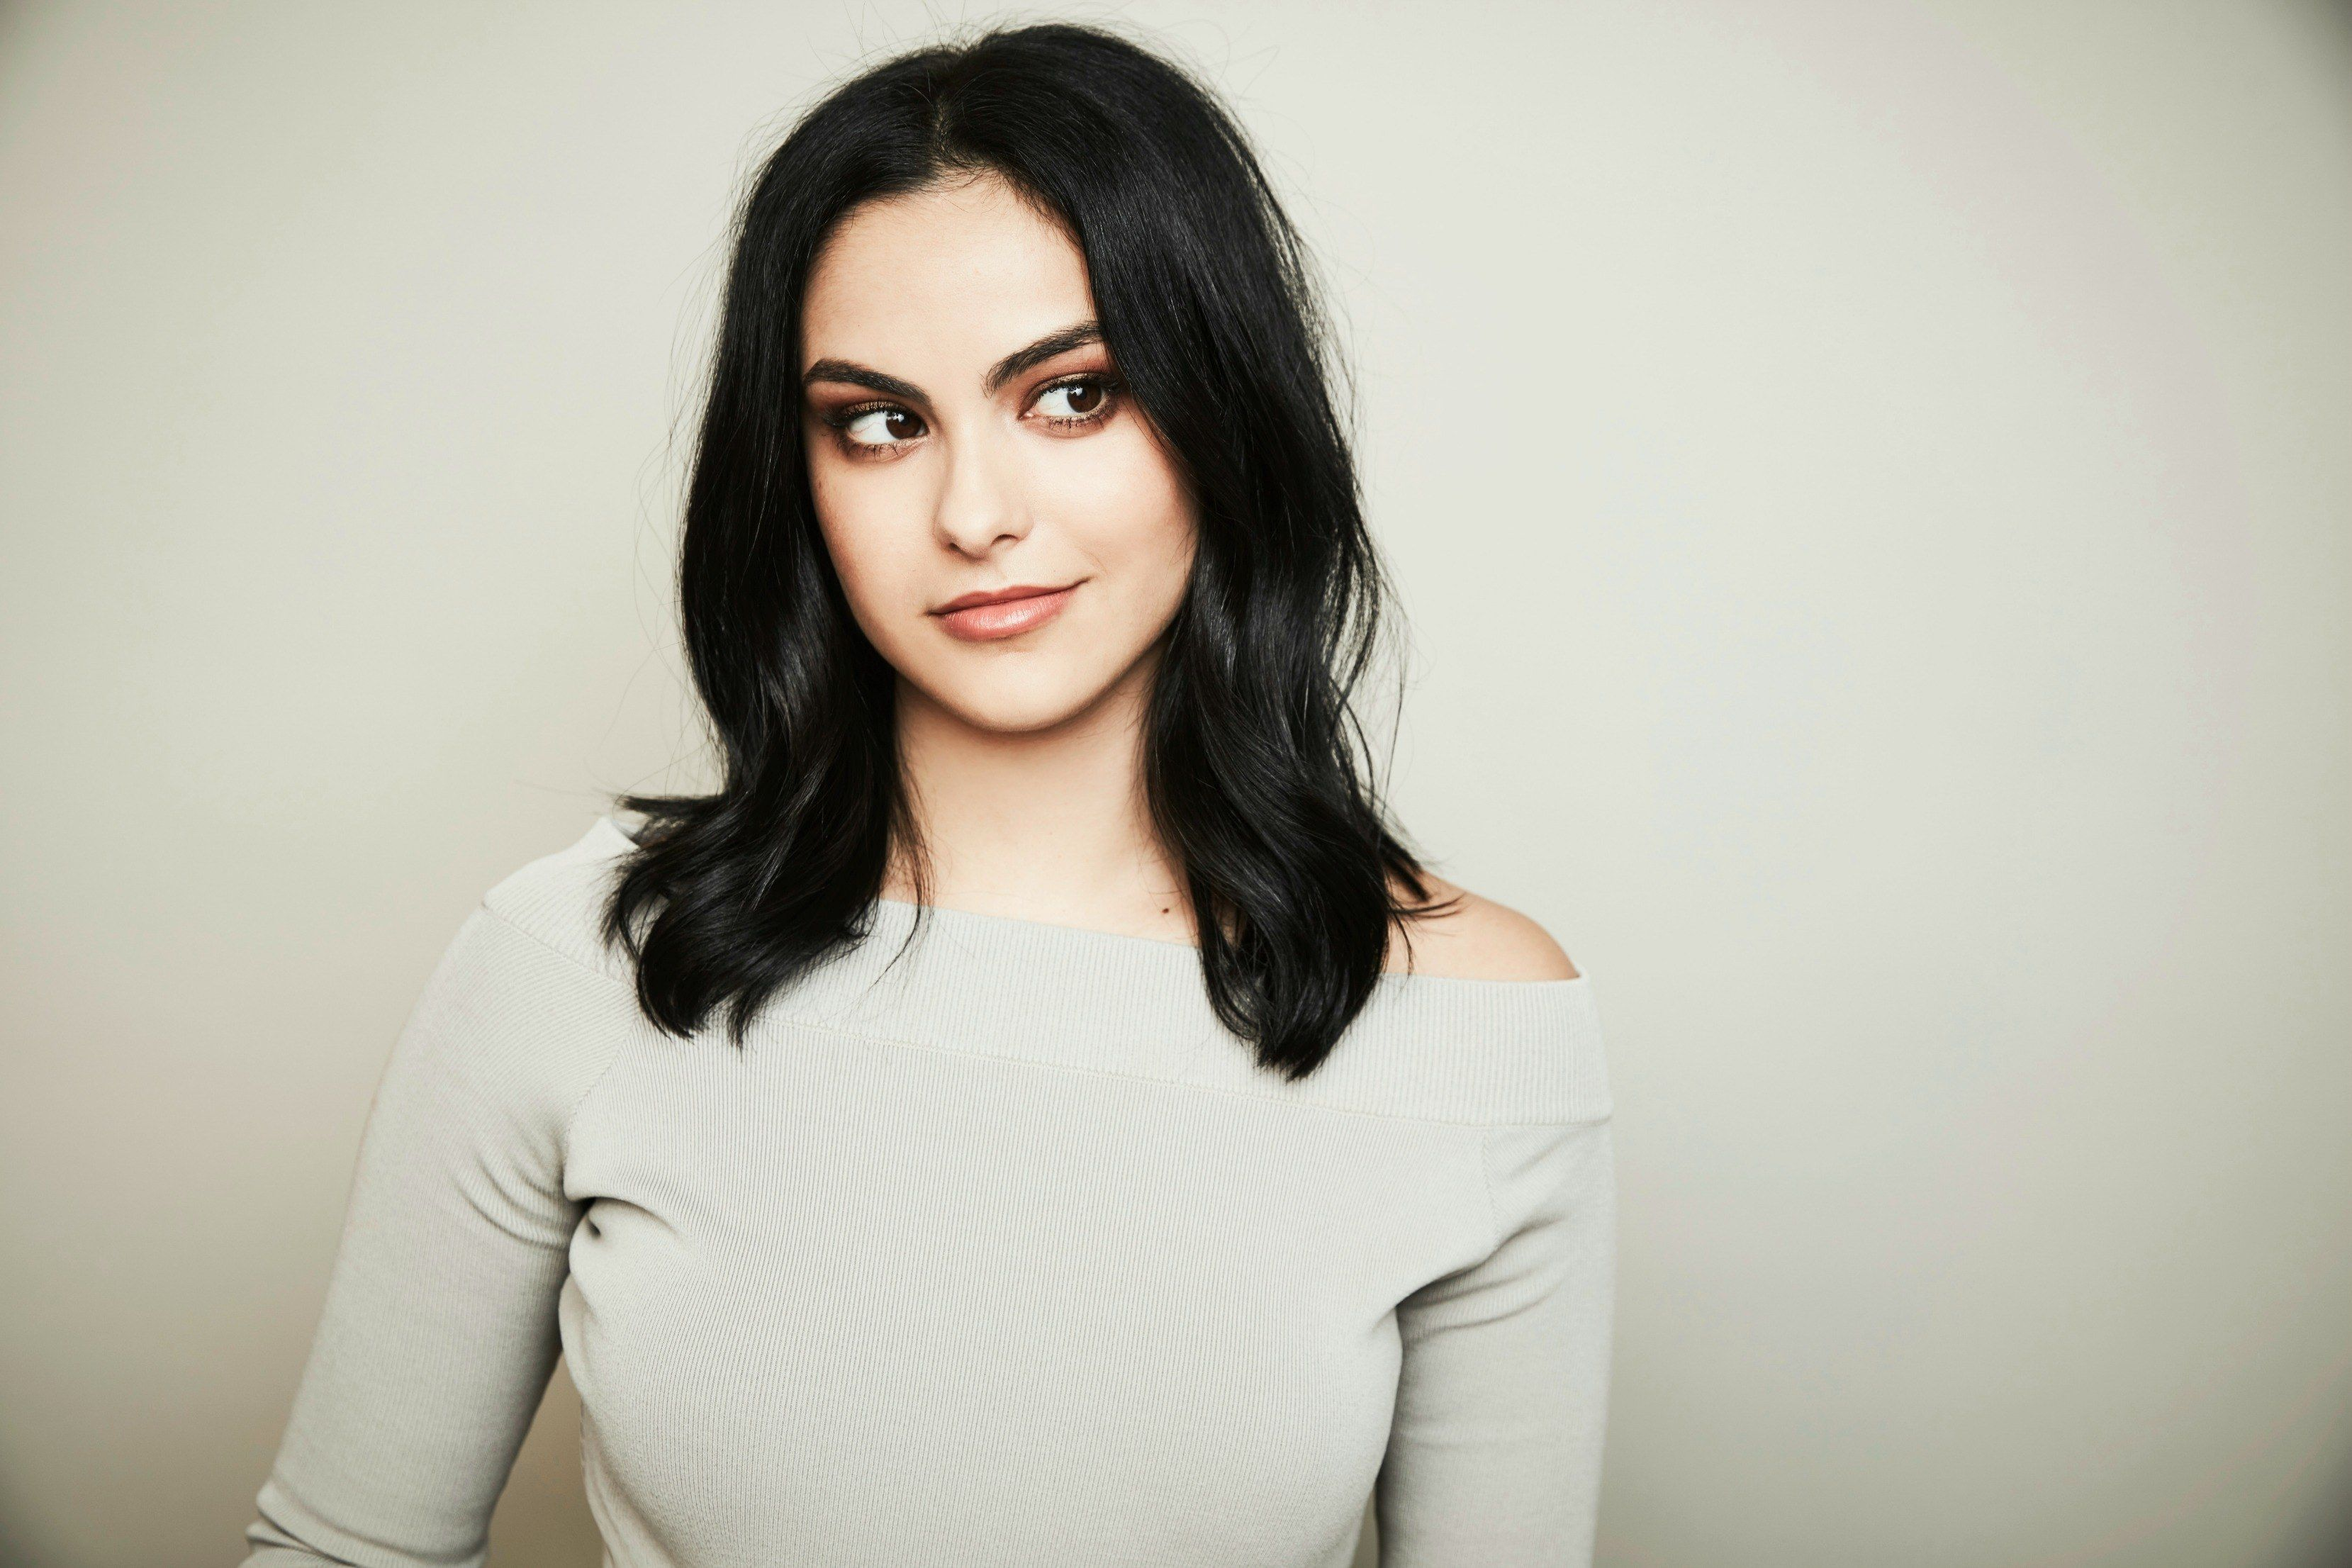 Camila Mendes HD Wallpaper Background Image 3318x2212 ID 3318x2212